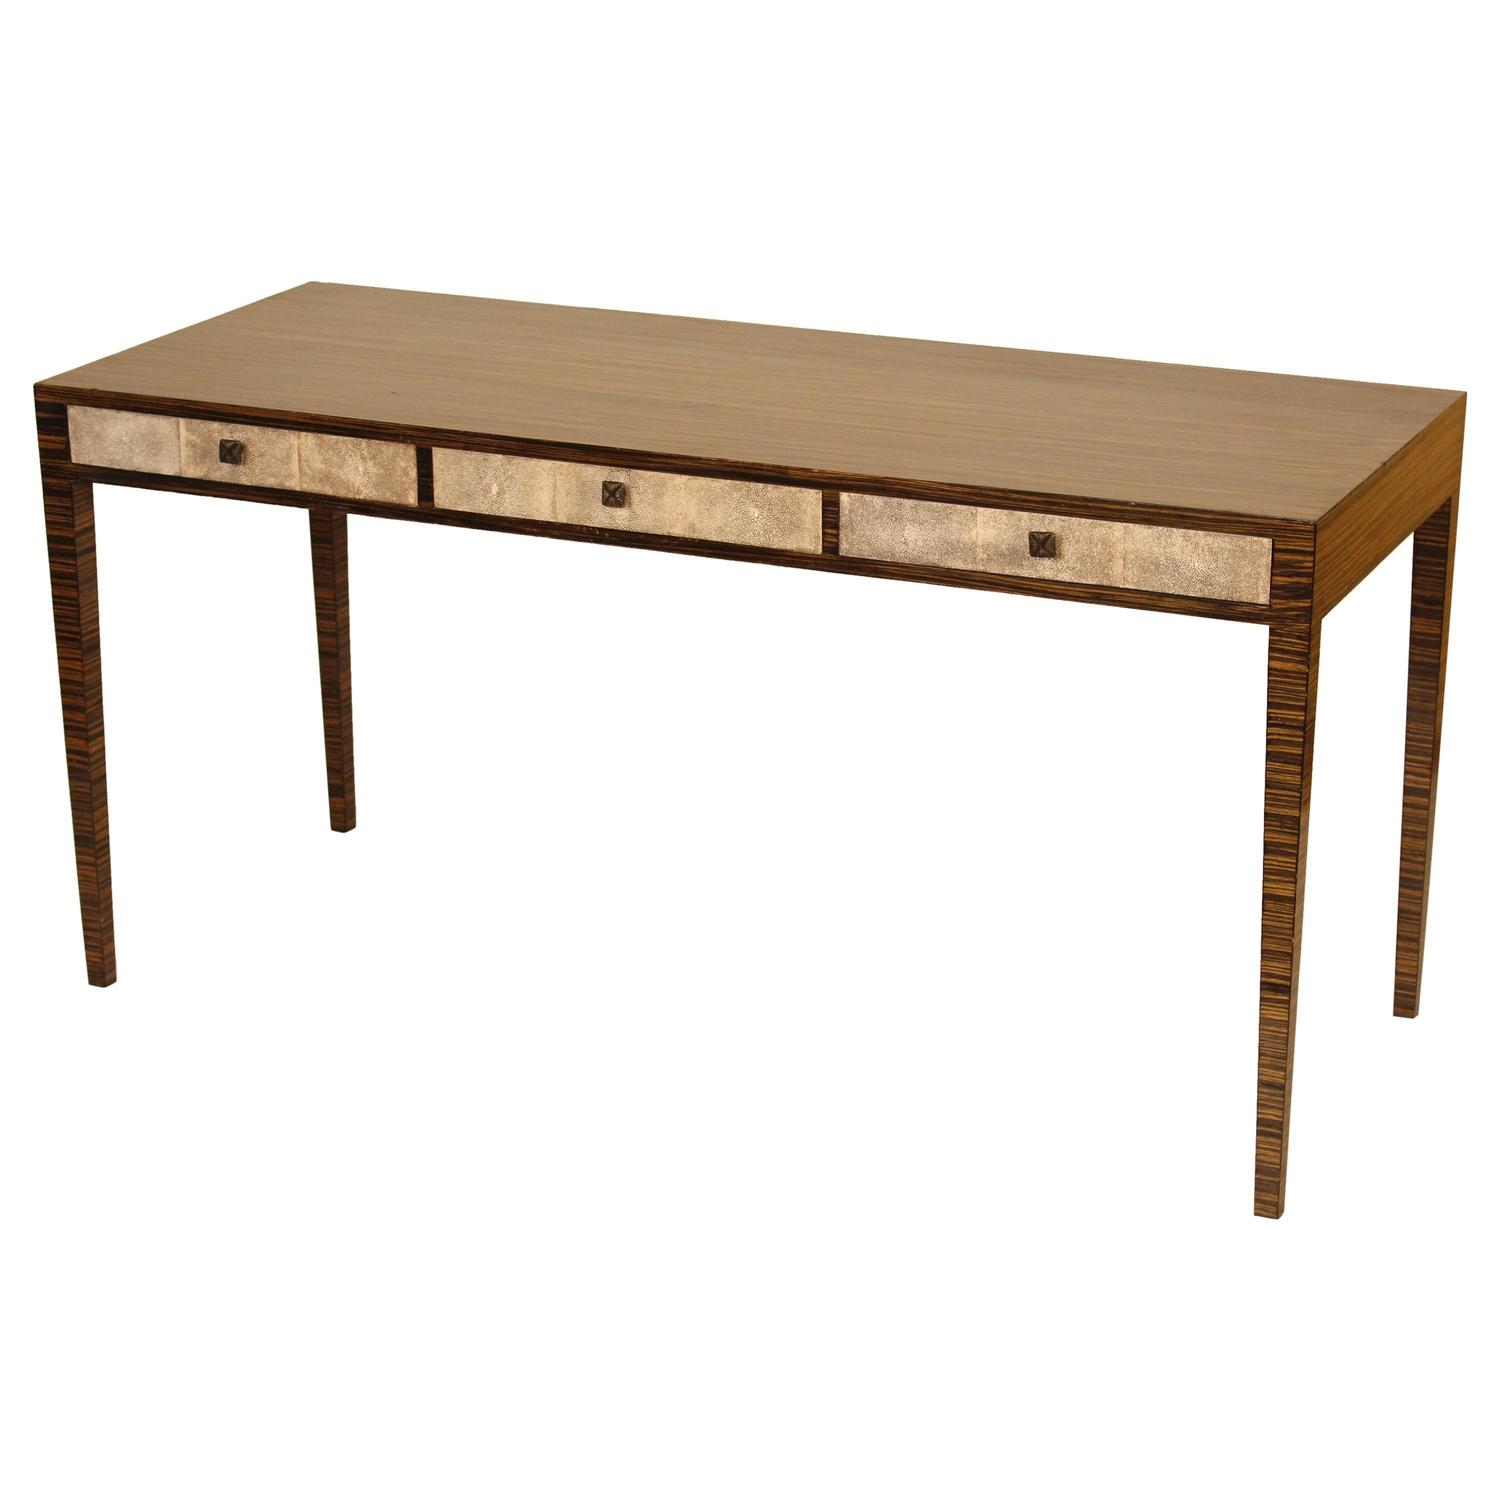 Zebra Wood Desk For Sale At 1stdibs